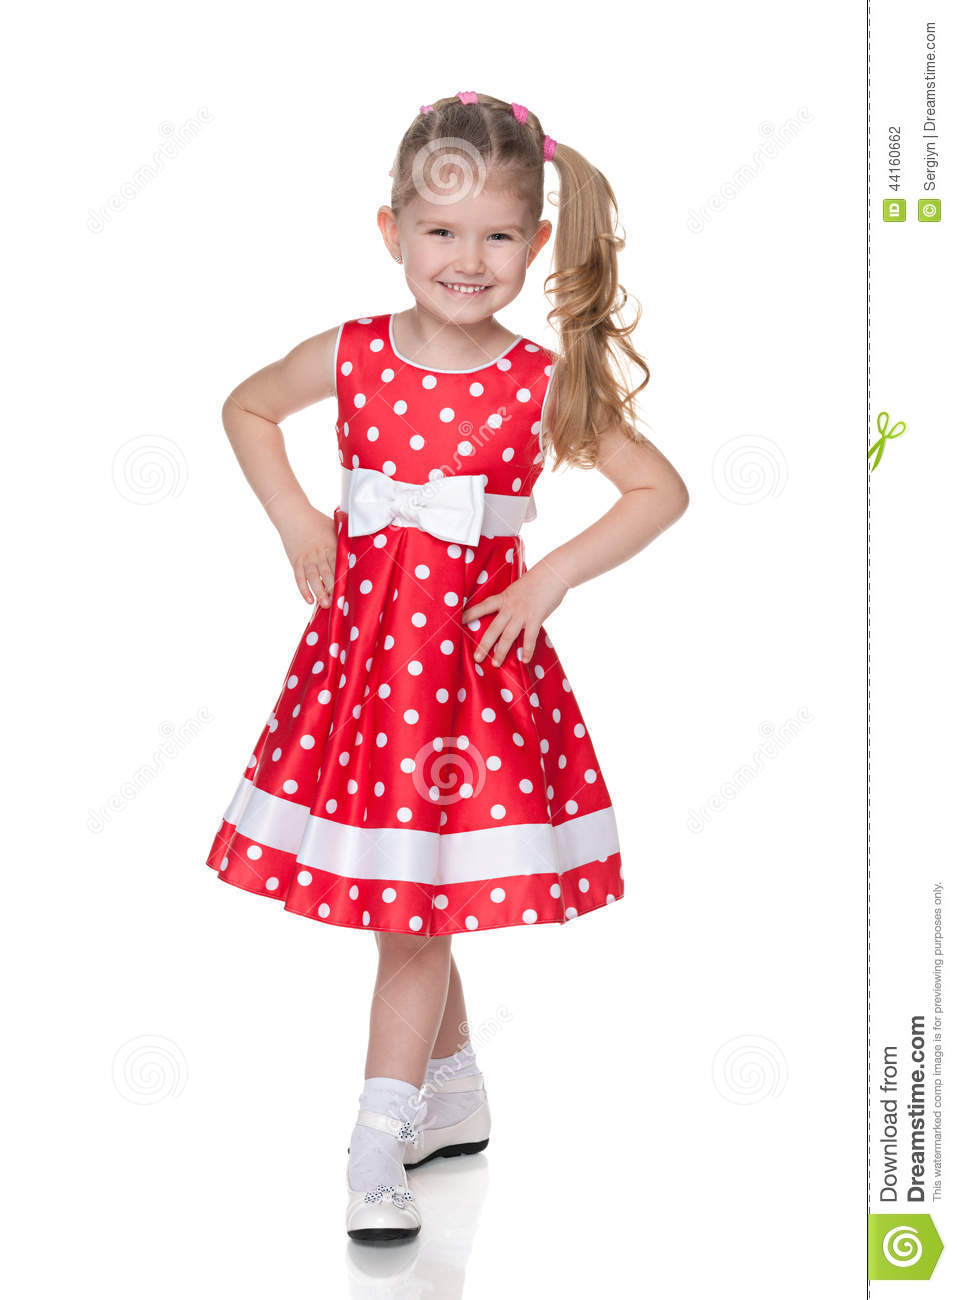 Girls Red White Polka Dot Dress Pixshark